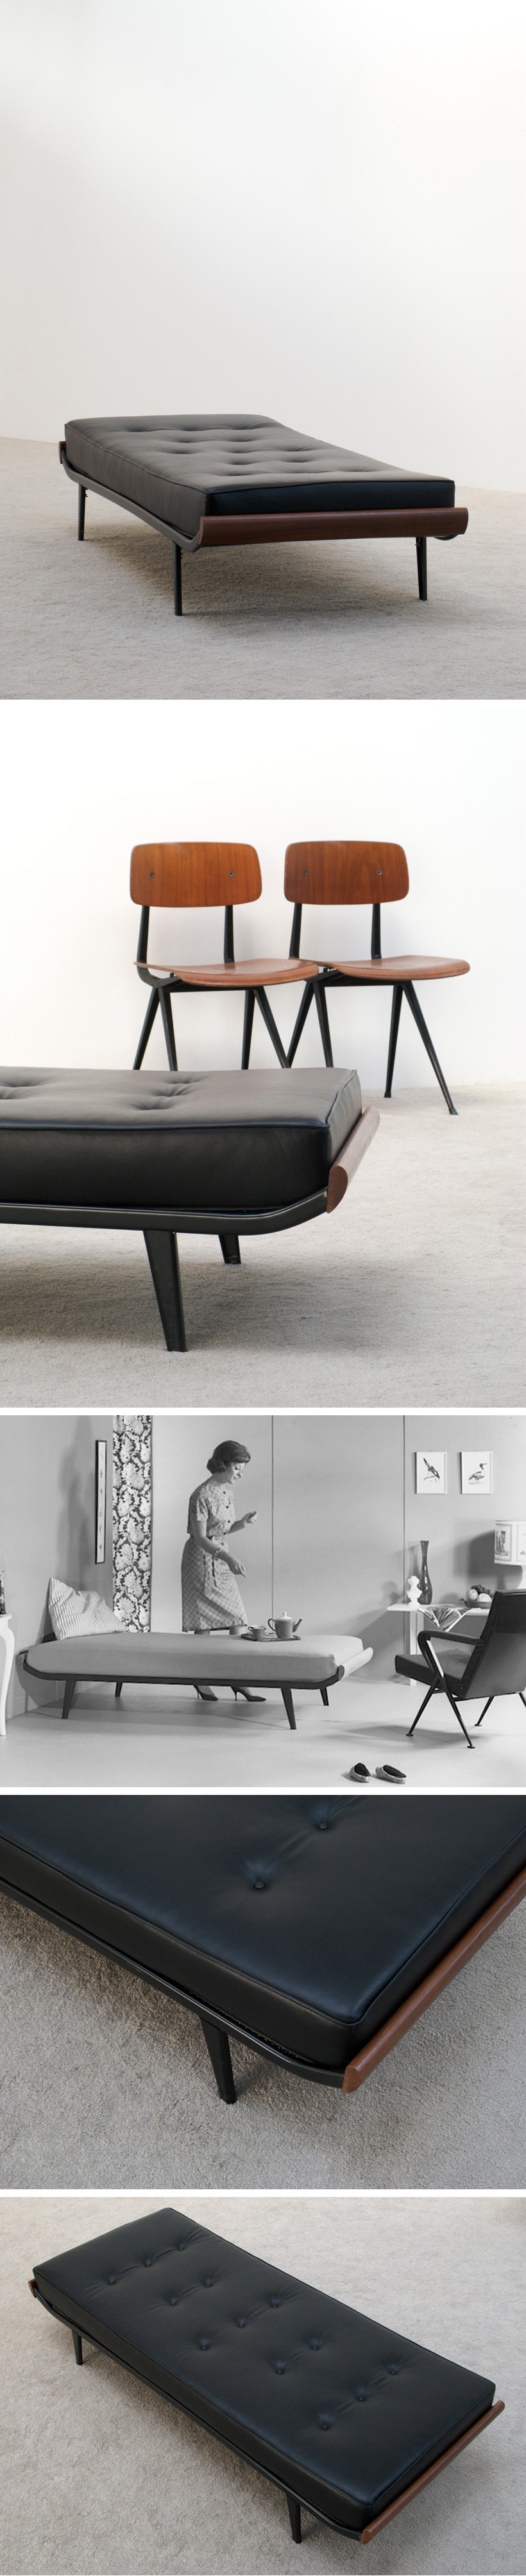 Dick Cordemeijer Cleopatra Daybed 1953 Large